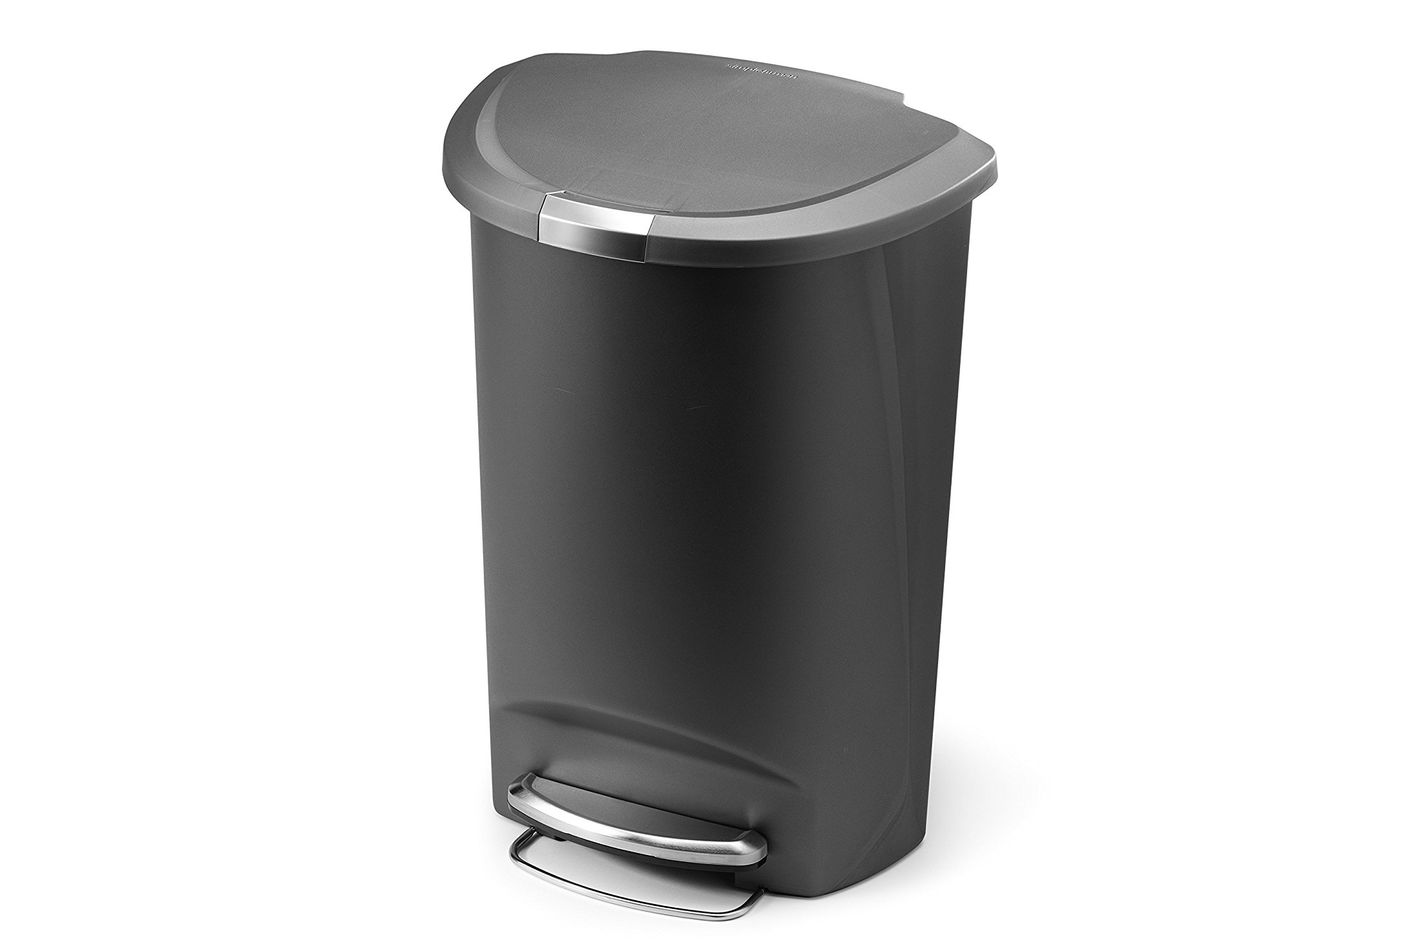 Simplehuman Semi-Round Step Trash Can, Grey Plastic, 13.2 Gallon